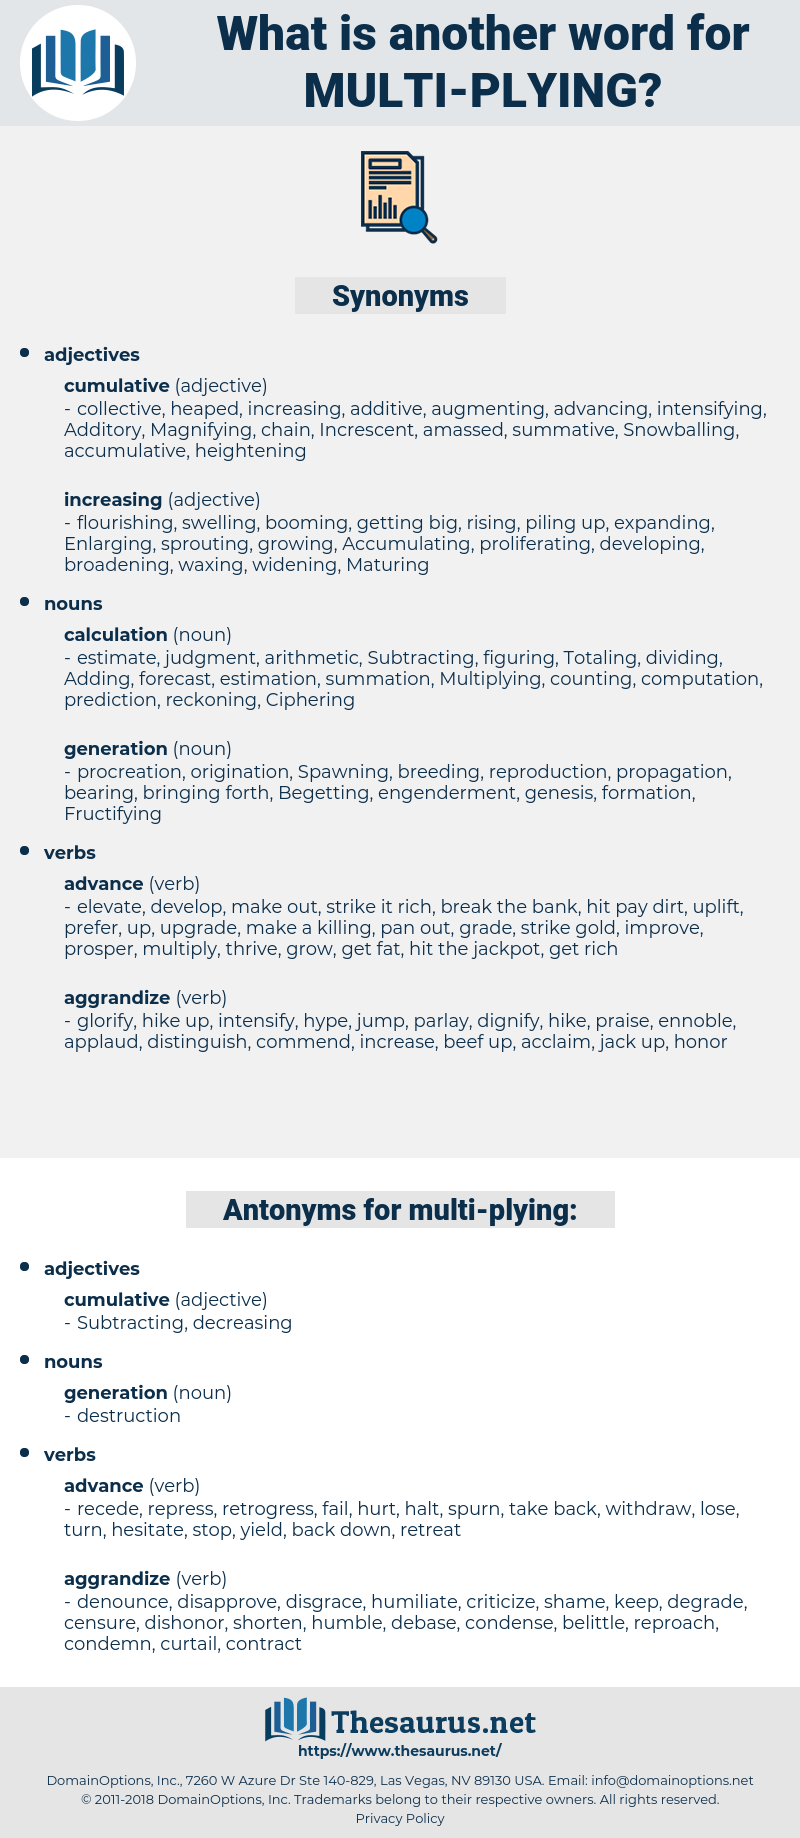 multi plying, synonym multi plying, another word for multi plying, words like multi plying, thesaurus multi plying